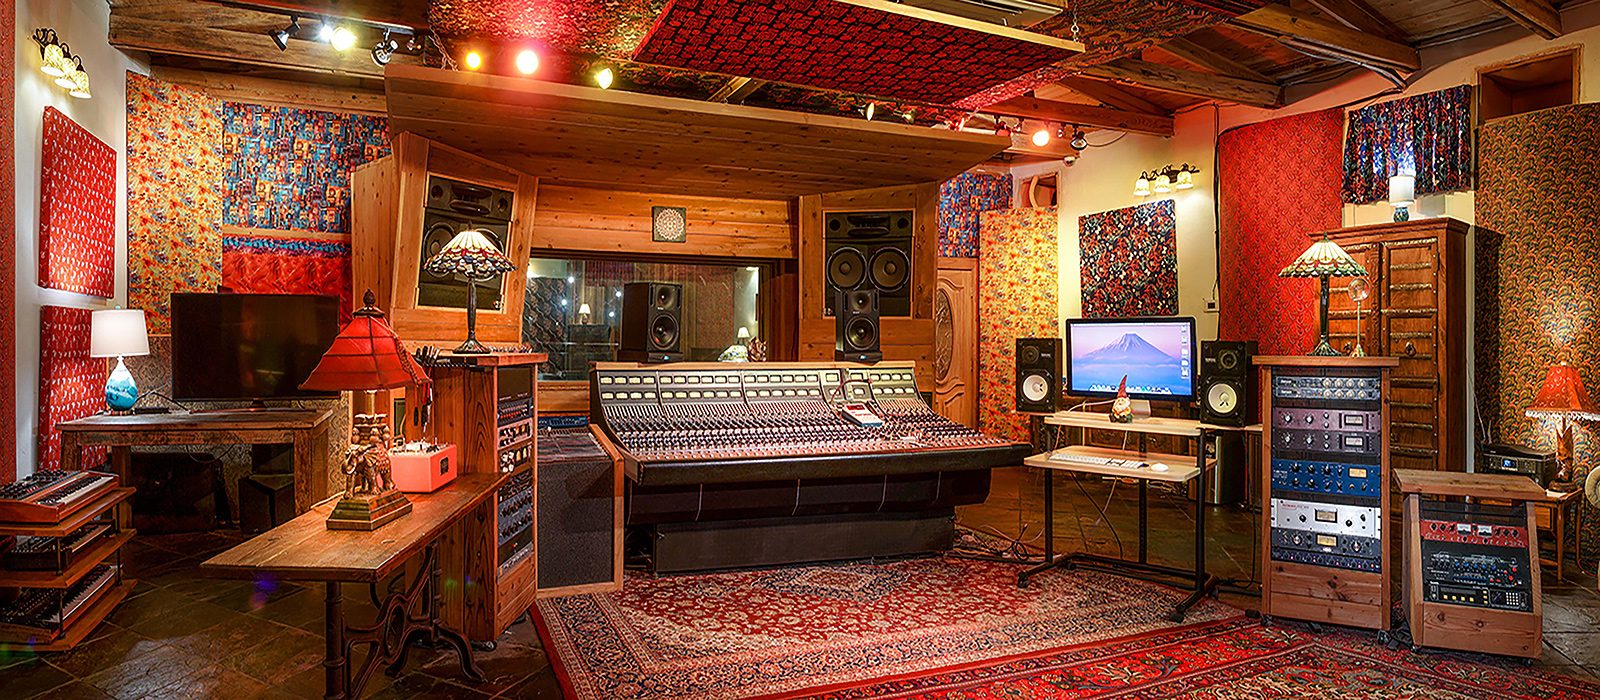 1600x700-studio-adobe-contolroom-left